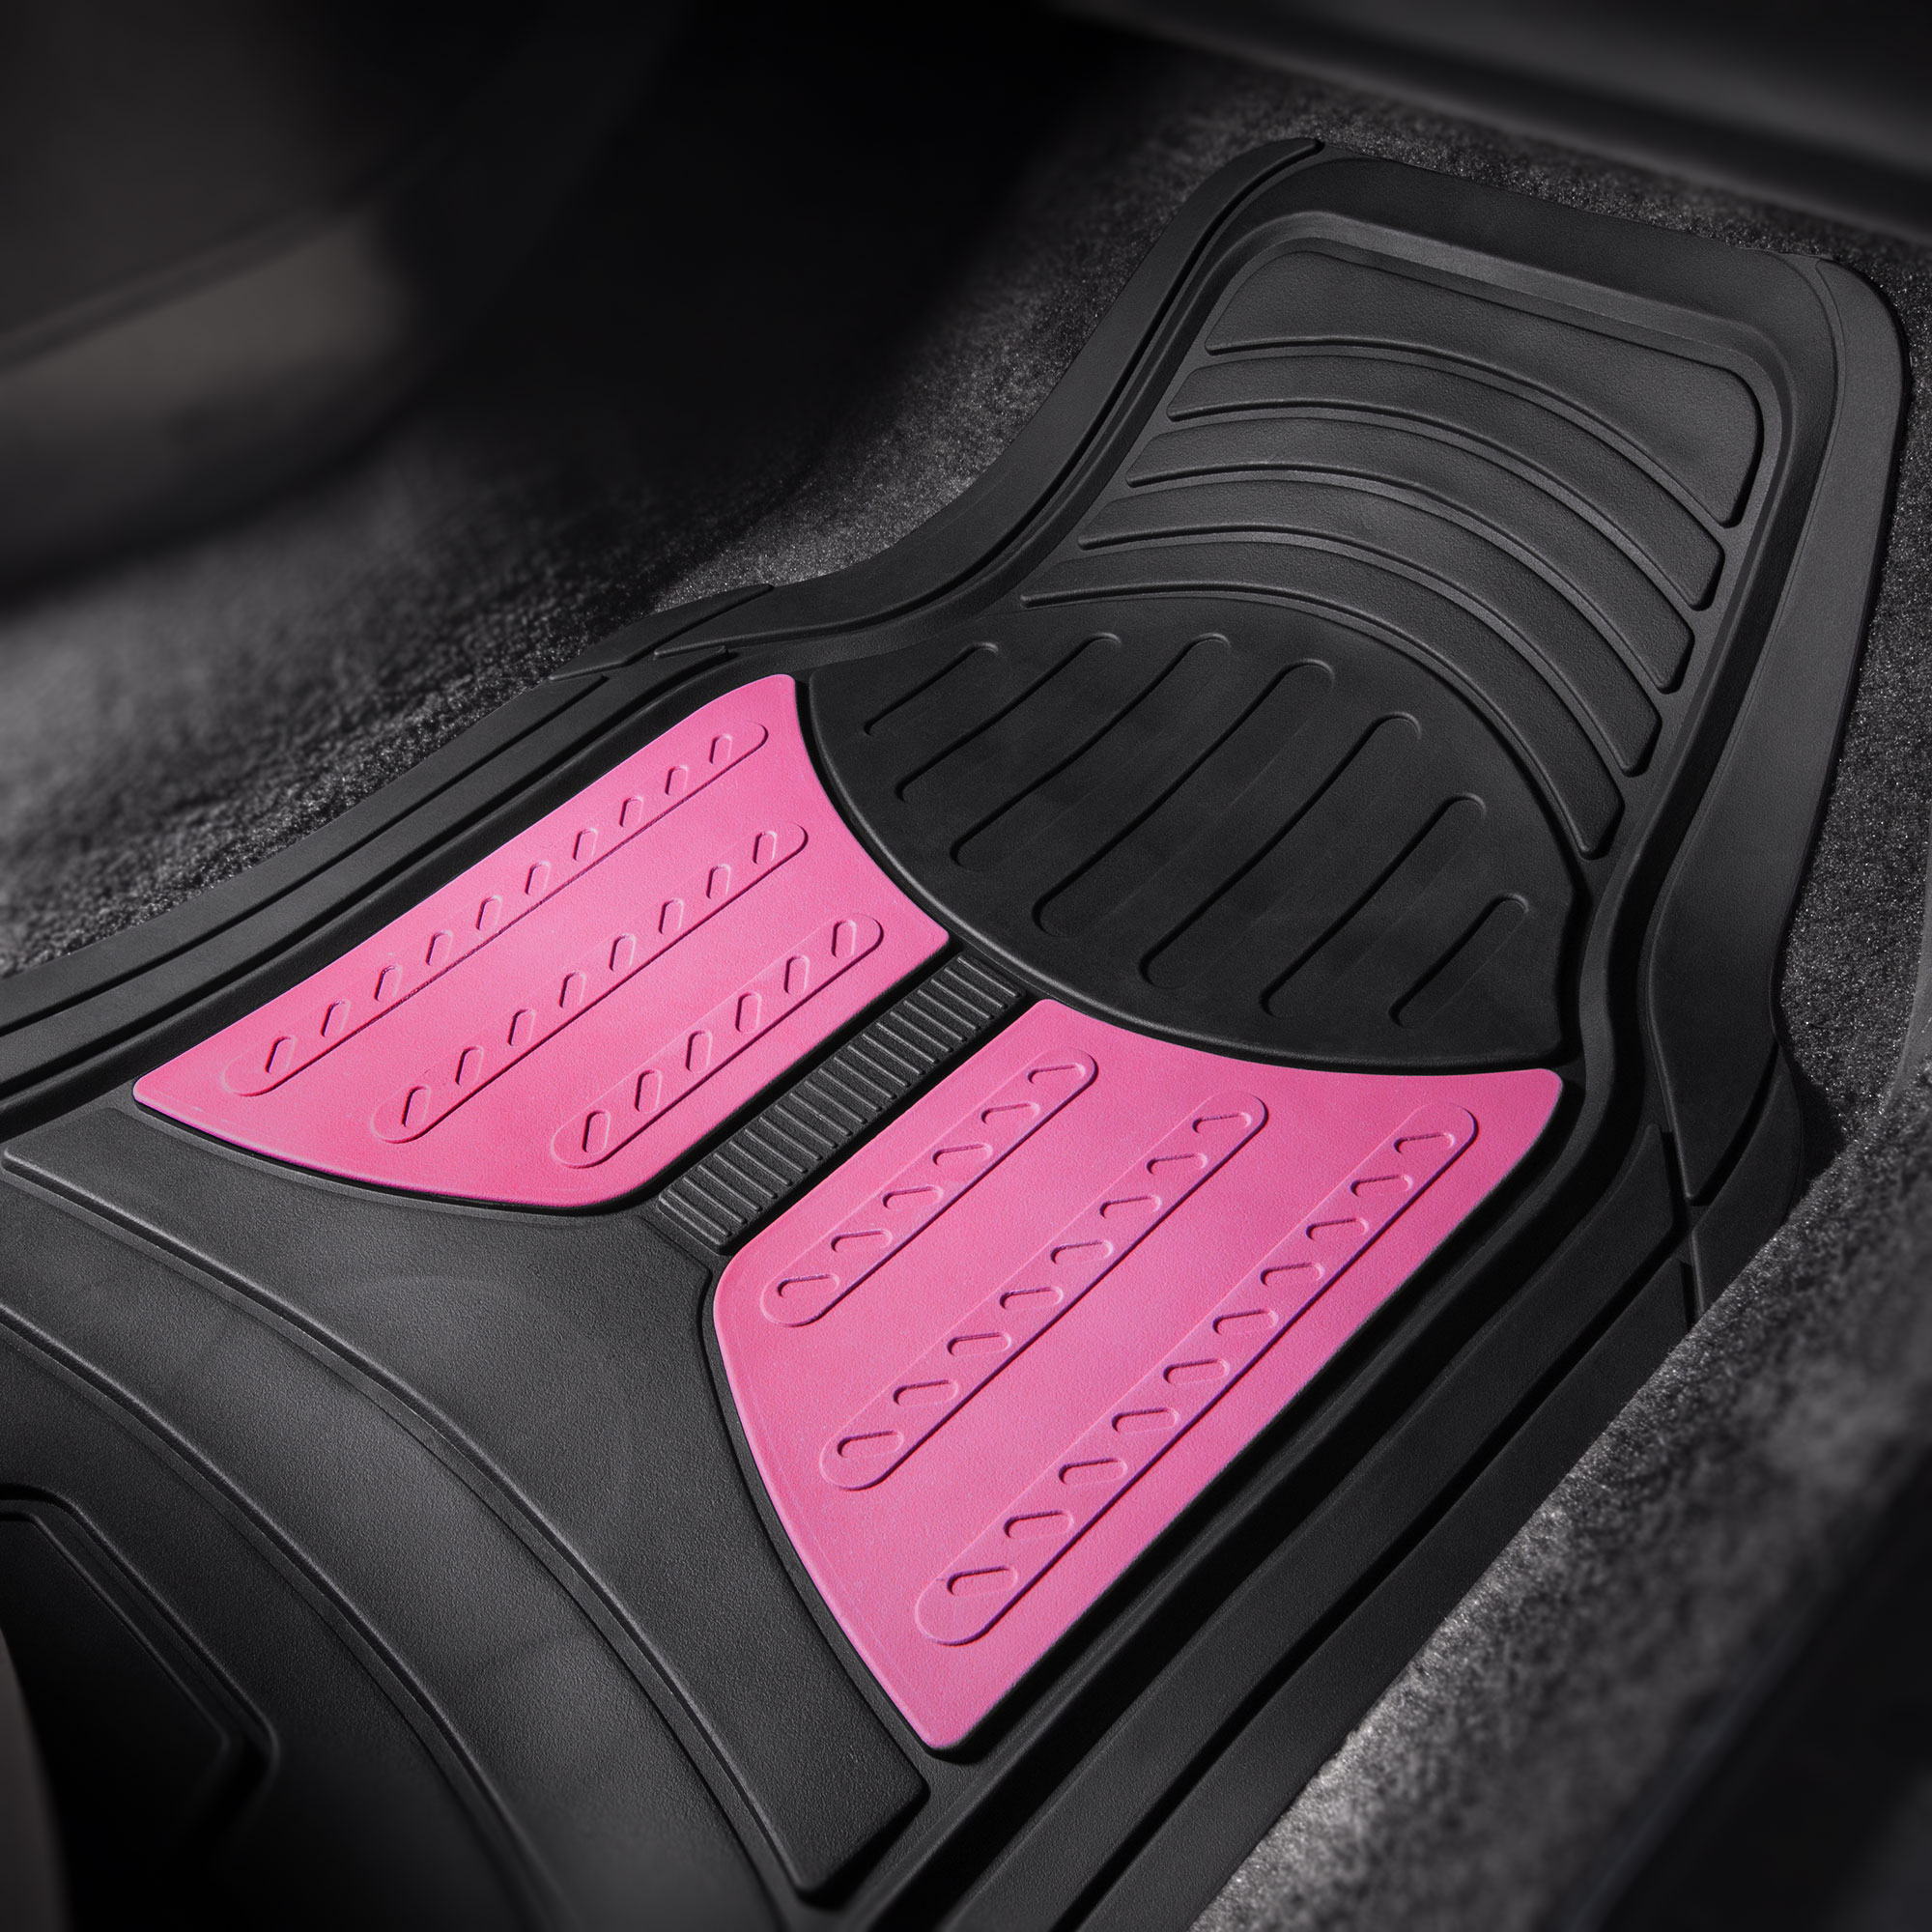 thumbnail 22 - Car Floor Mats for All Weather Rubber 2-Tone Design Heavy Duty - 4 Pc Set